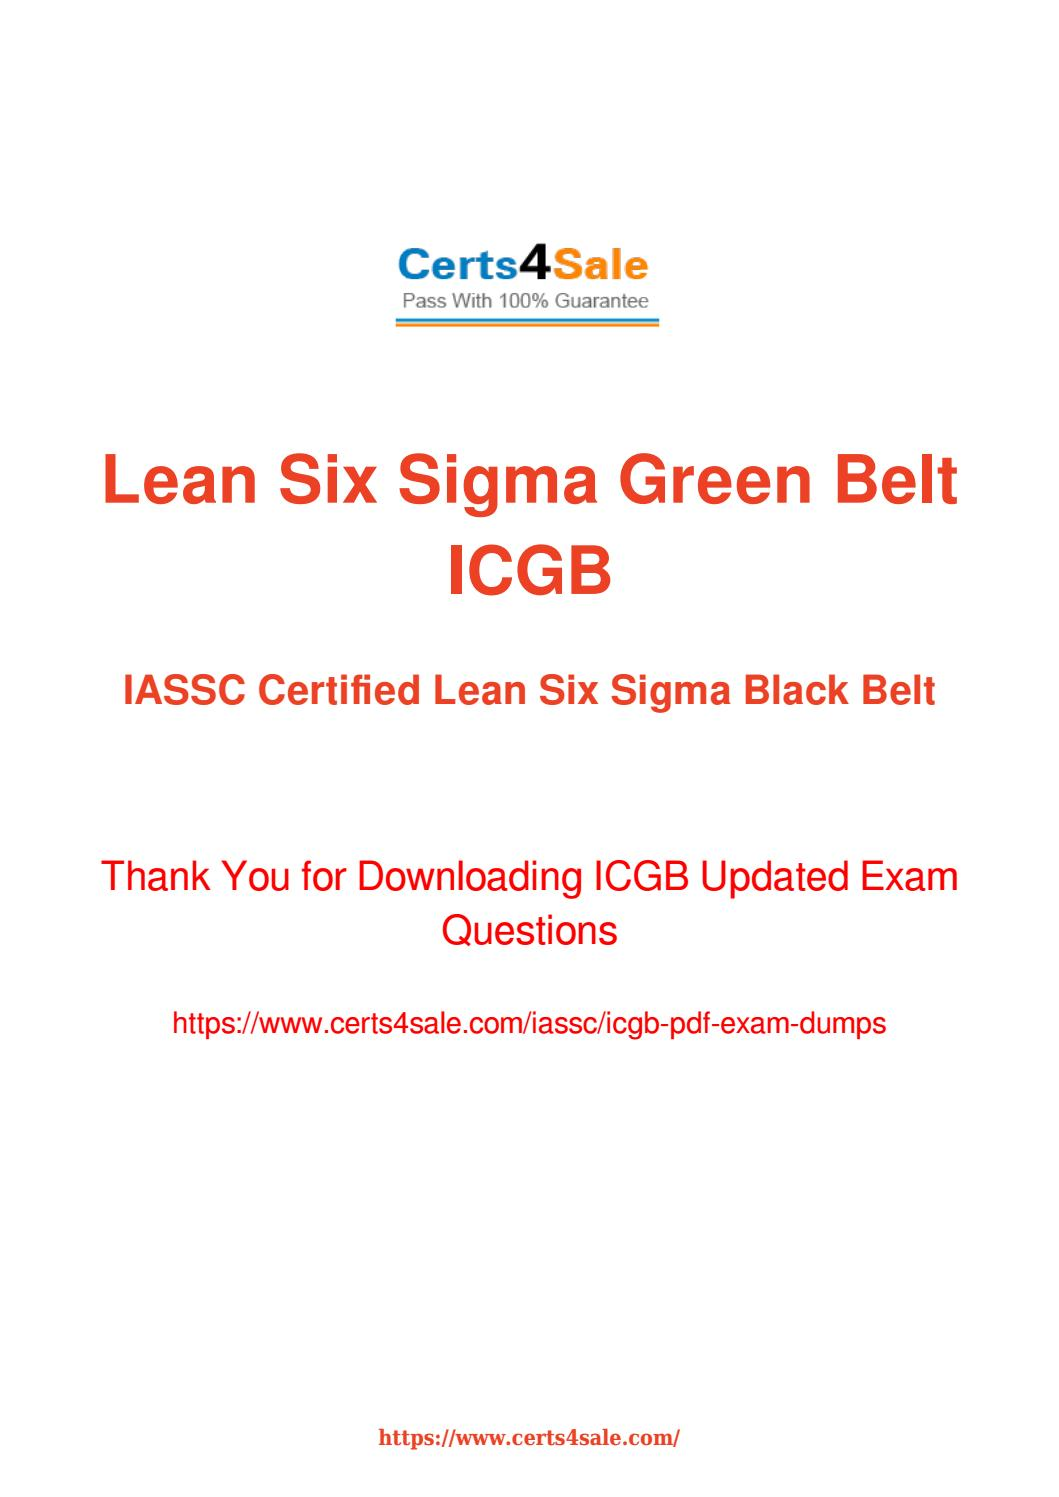 Try Iassc Icgb Exam Questions With 100 Success Guarantee By